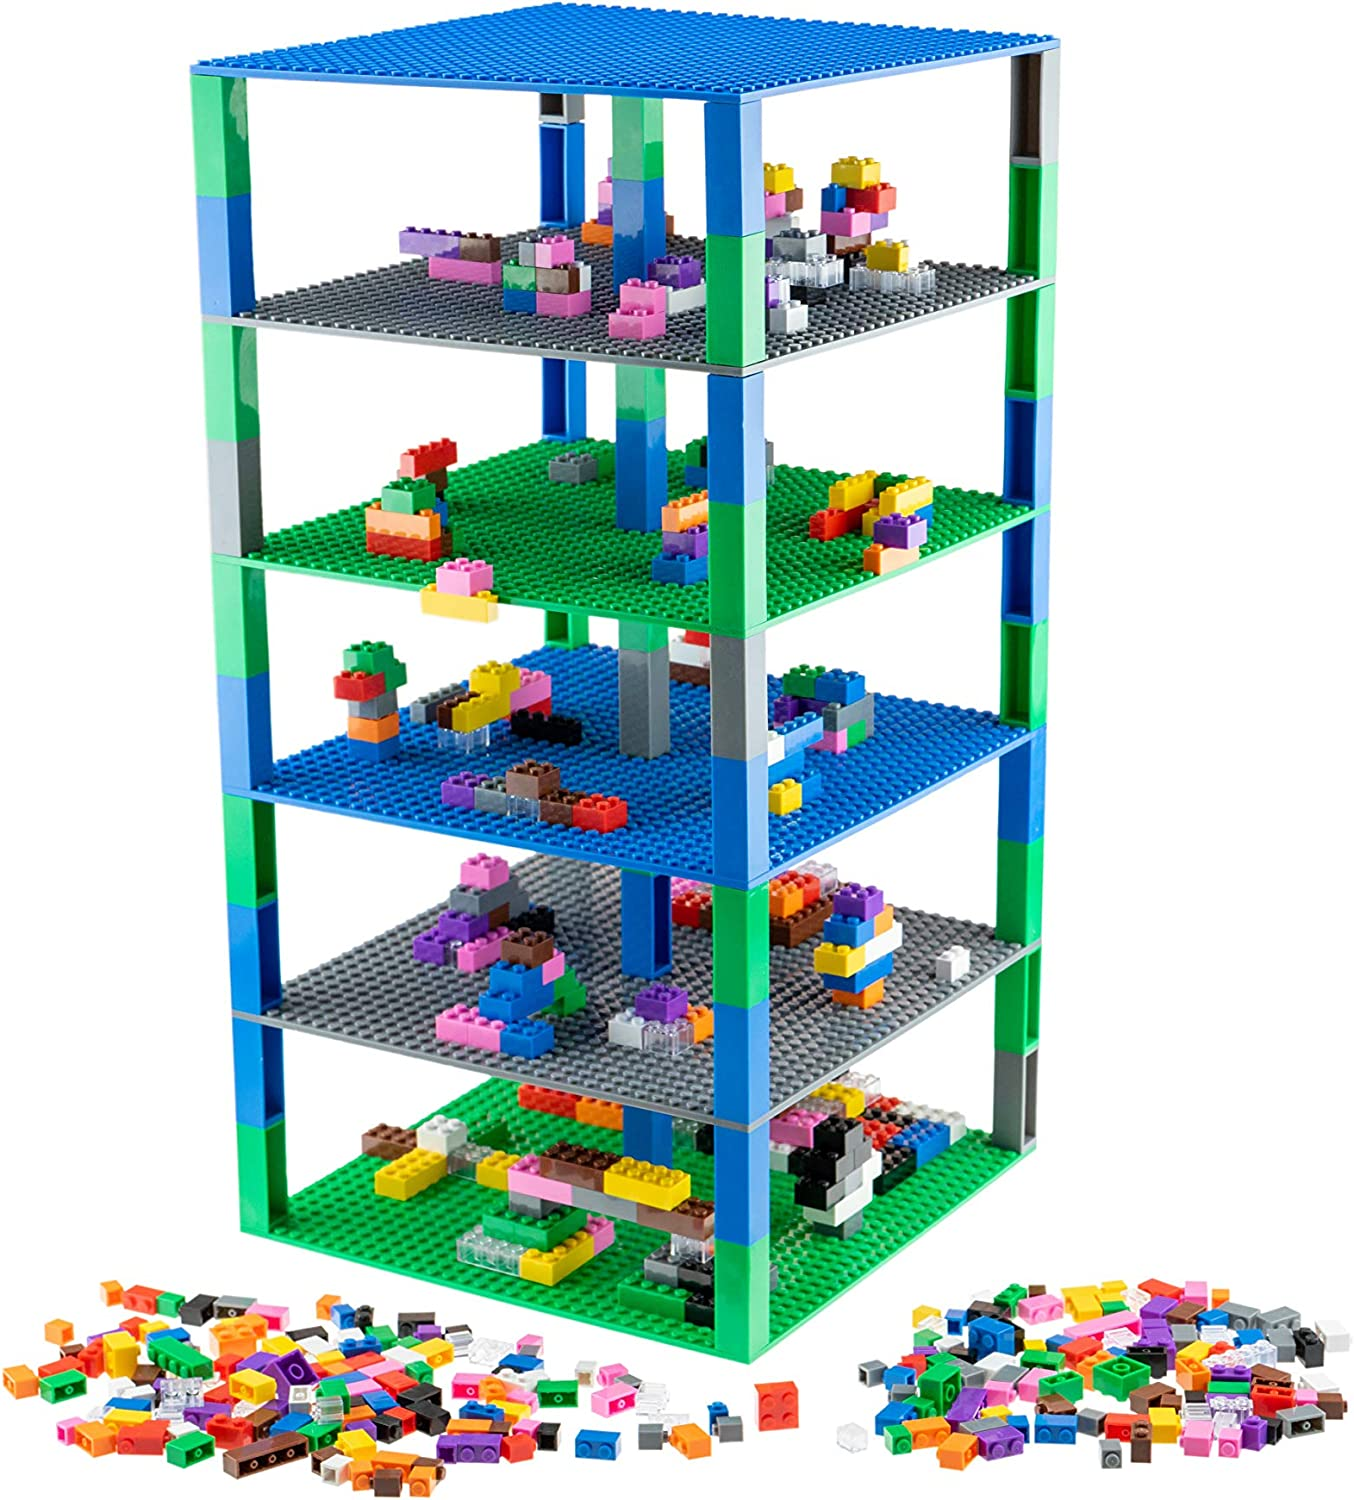 Strictly Briks - Brik Tower with 500 Classic Bricks in 12 Colors - 6 10x10 inch Baseplates in Blue, Gray, and Green - 100% Compatible with All Major Building Brick Brands